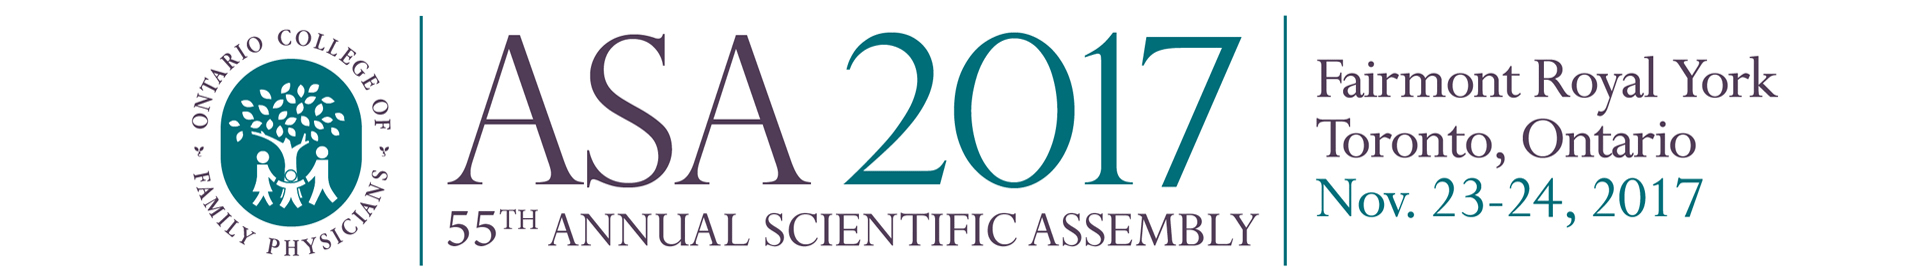 55th Annual Scientific Assembly